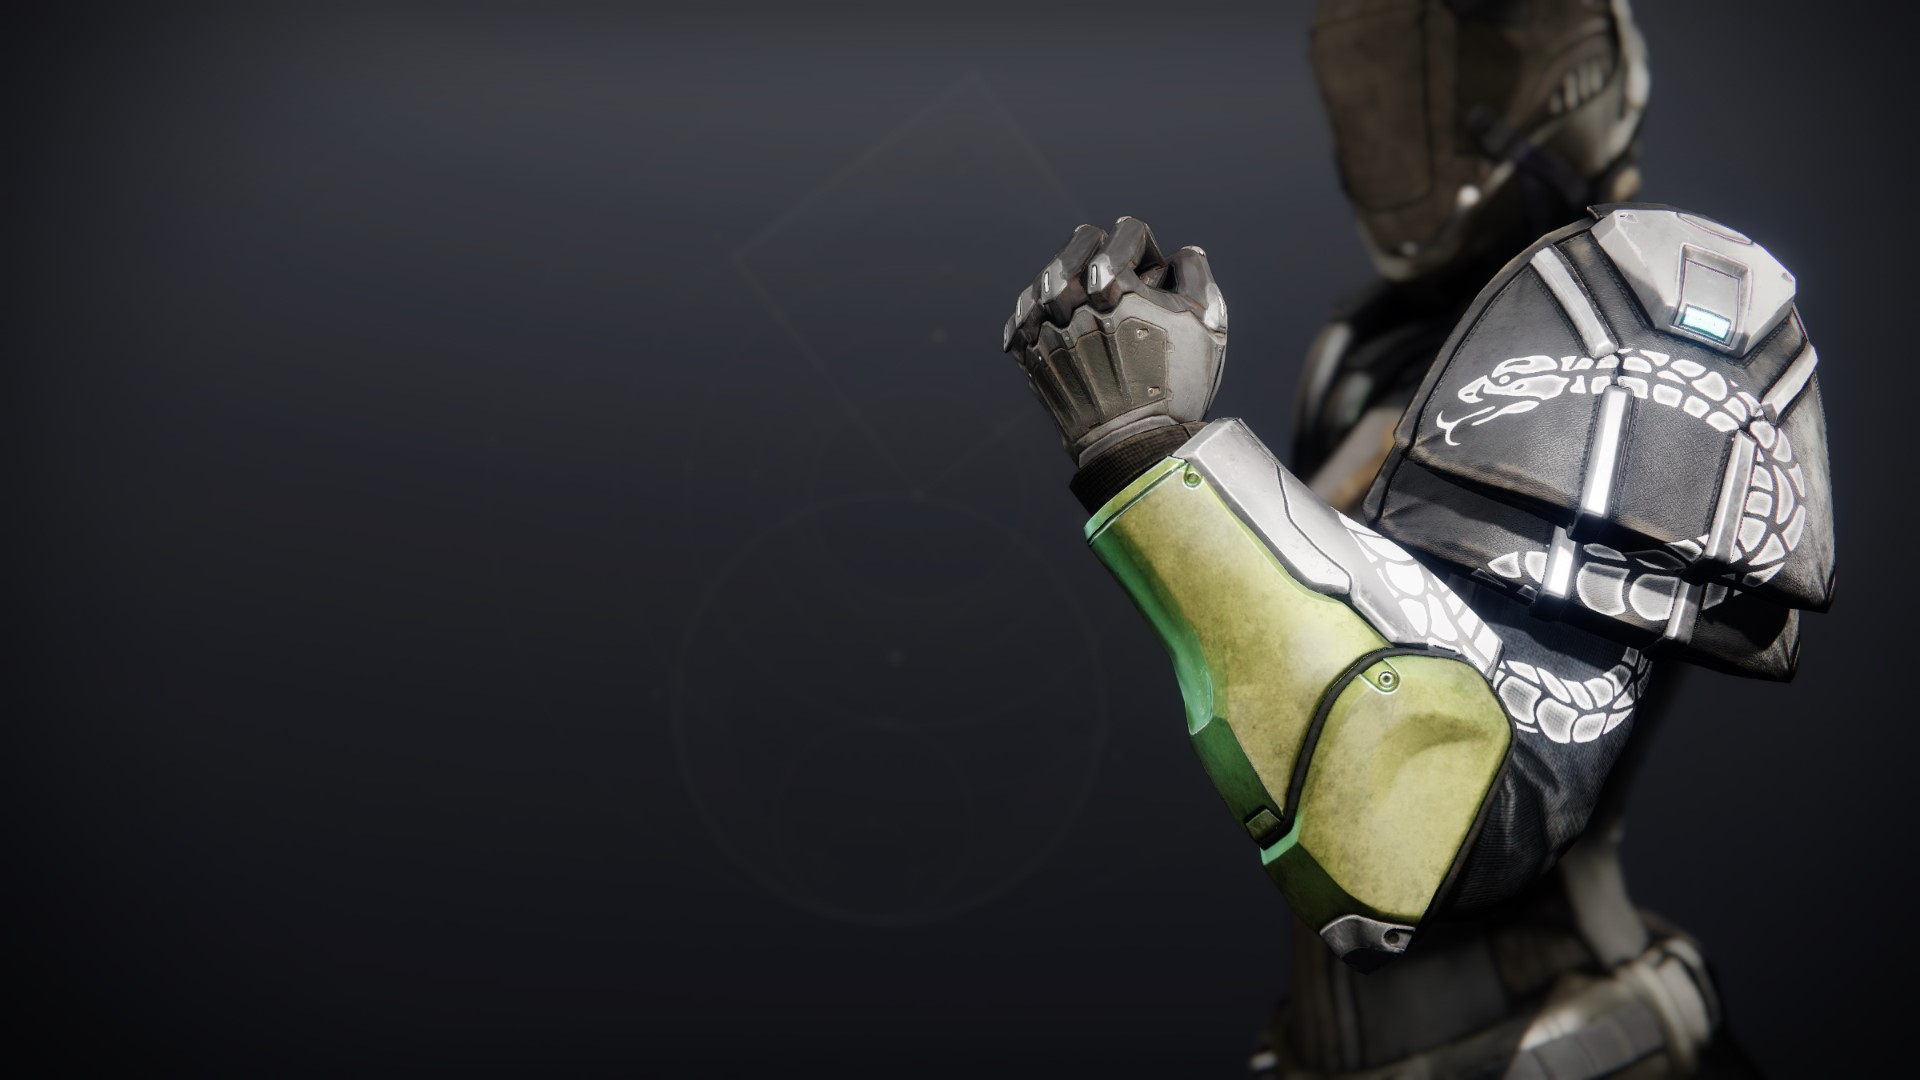 An in-game render of the Illicit Collector Gauntlets.